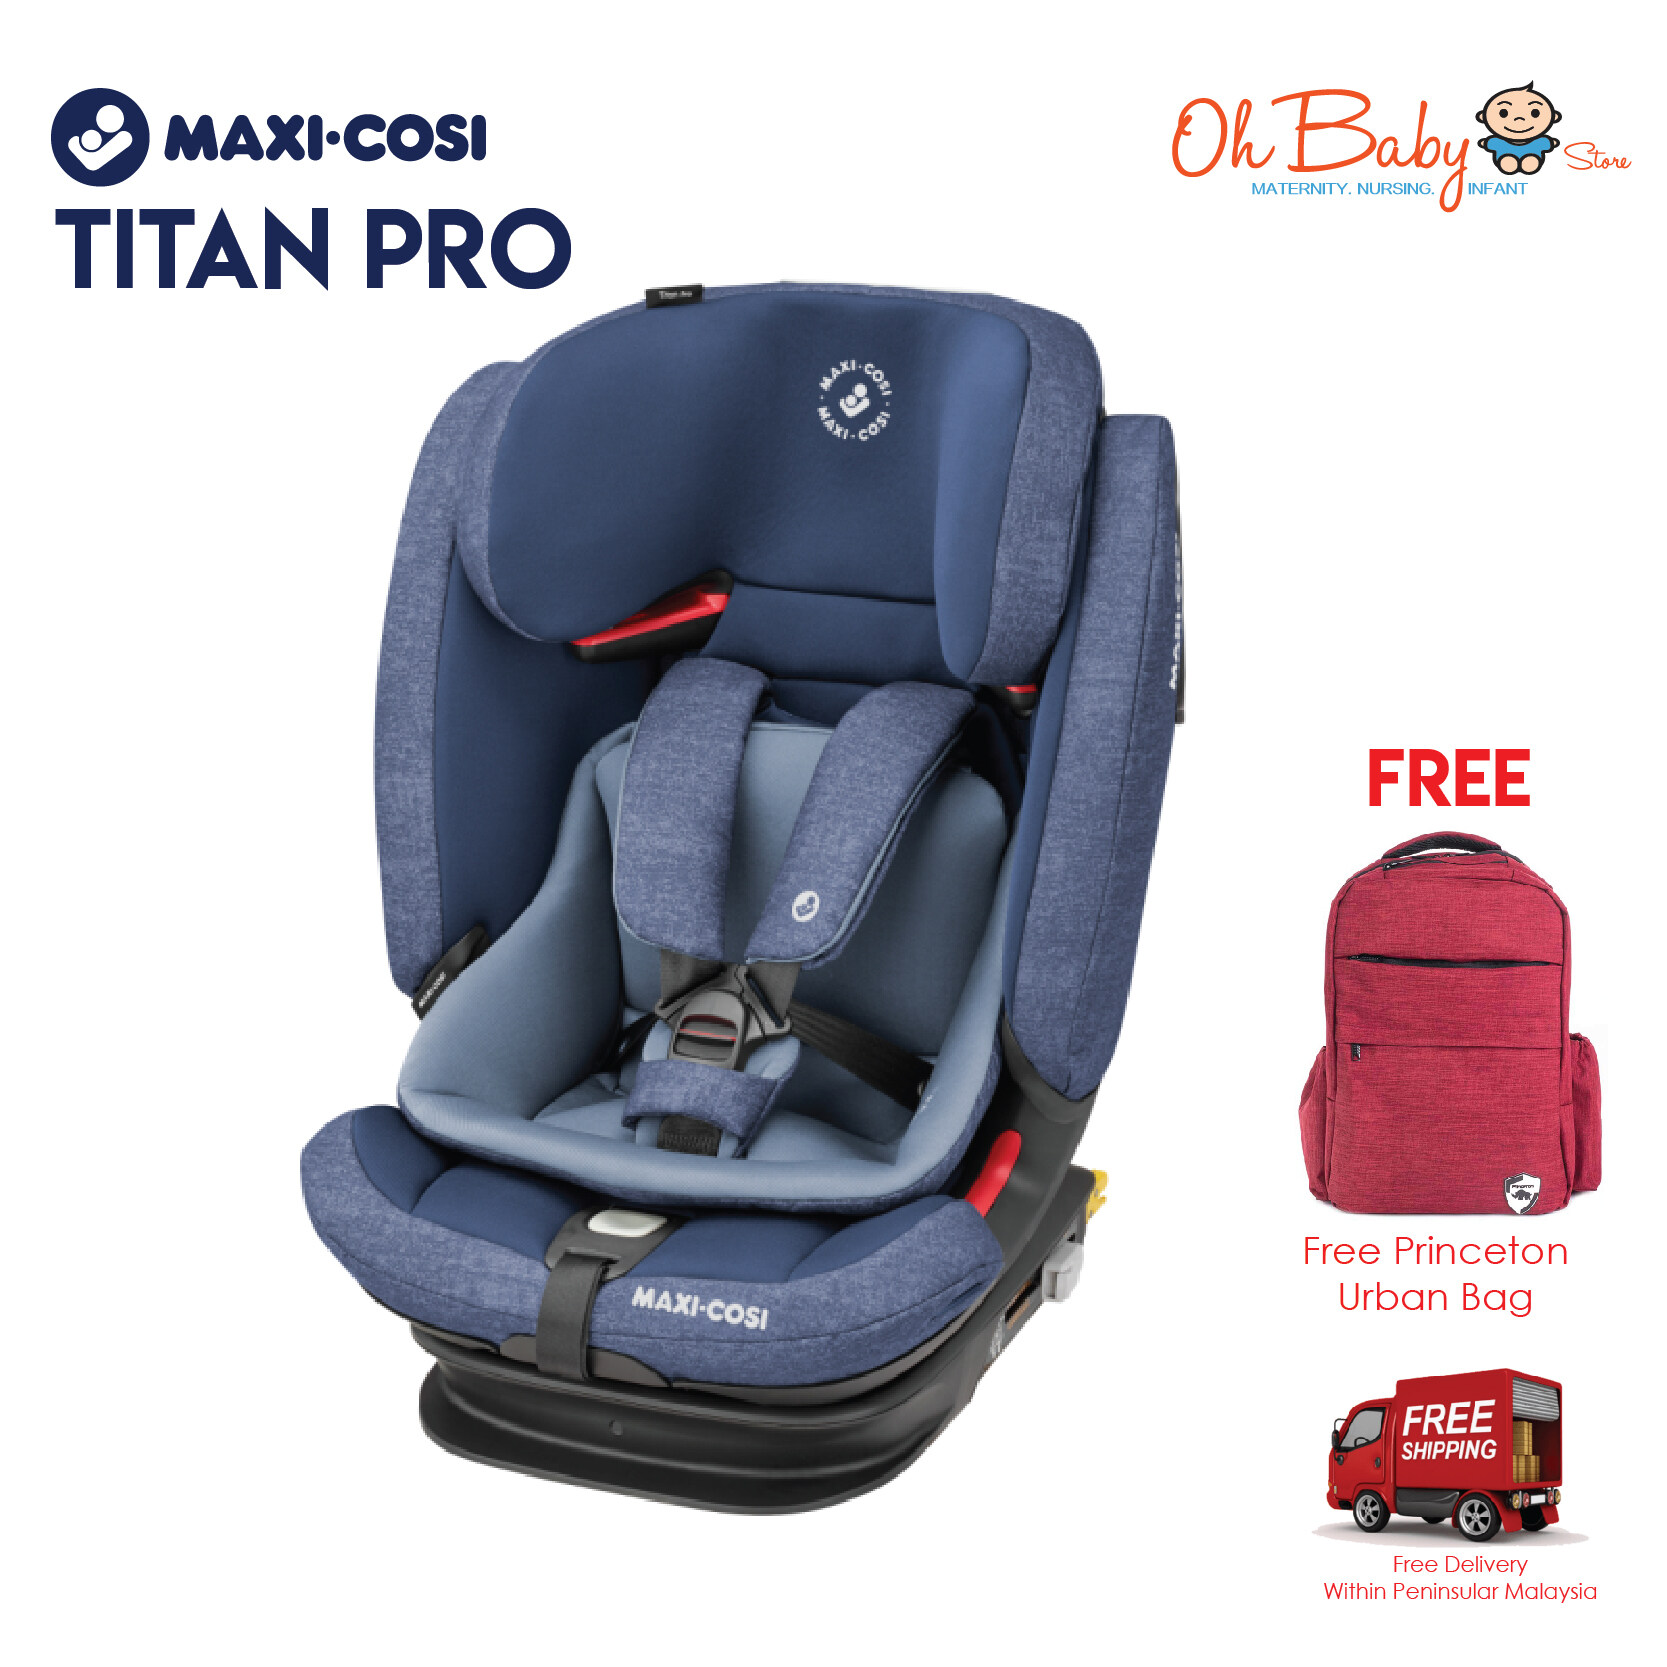 Maxi-Cosi Titan Pro Baby Car Seat from 9kg to 36kg